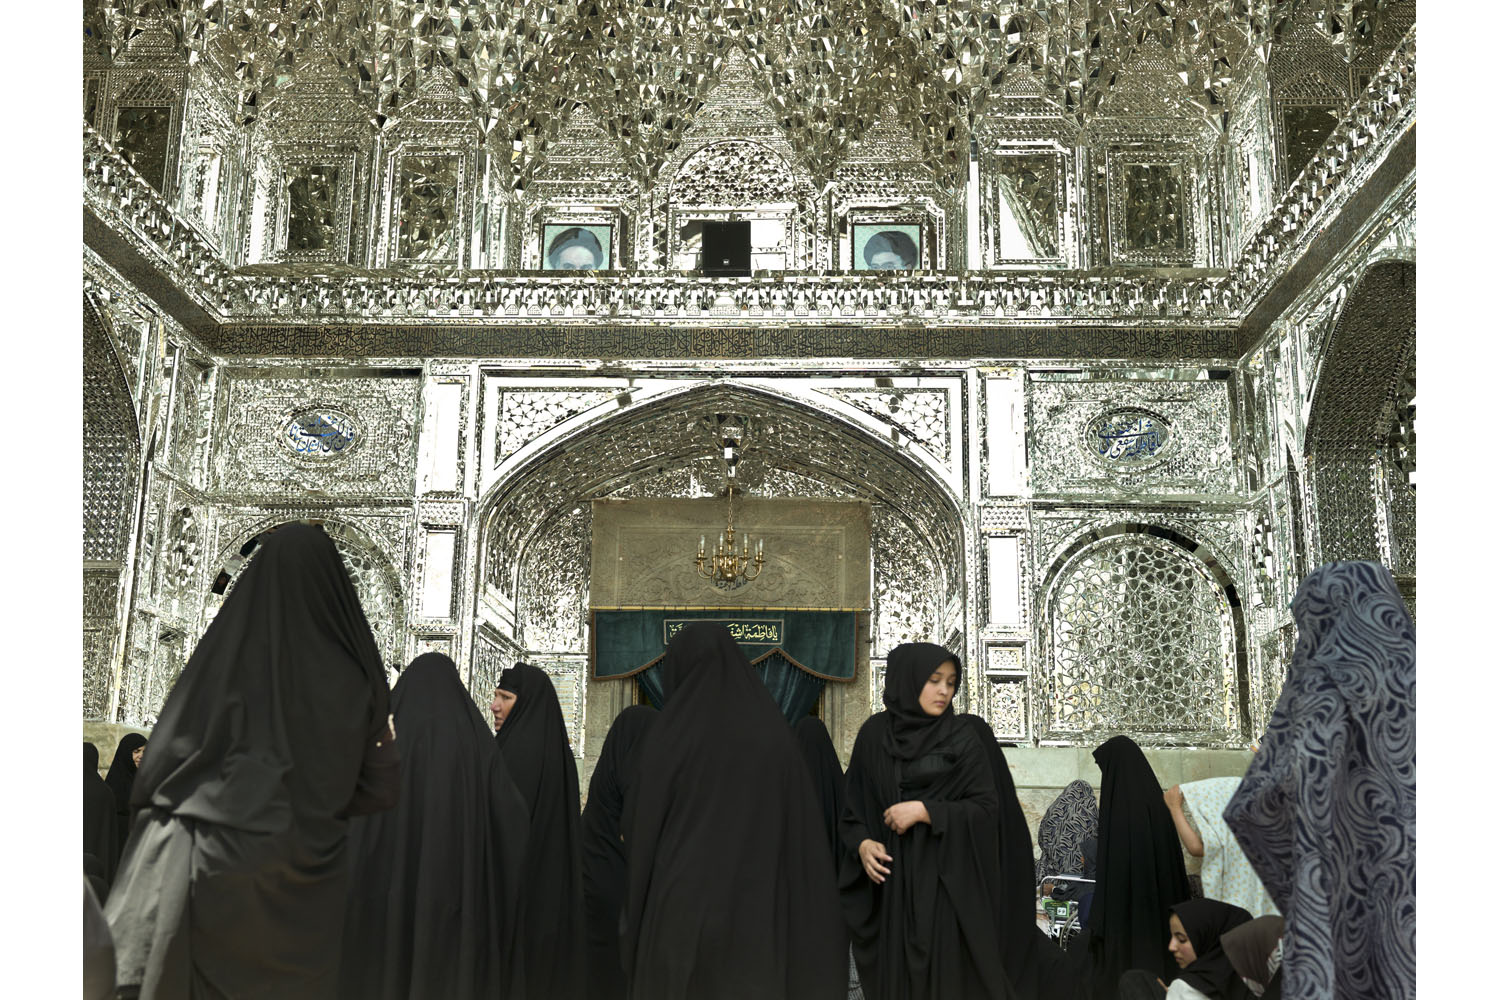 Iranian women at the 17th century shrine of Fatemeh Masoumeh in the holy Shiite city of Qum.